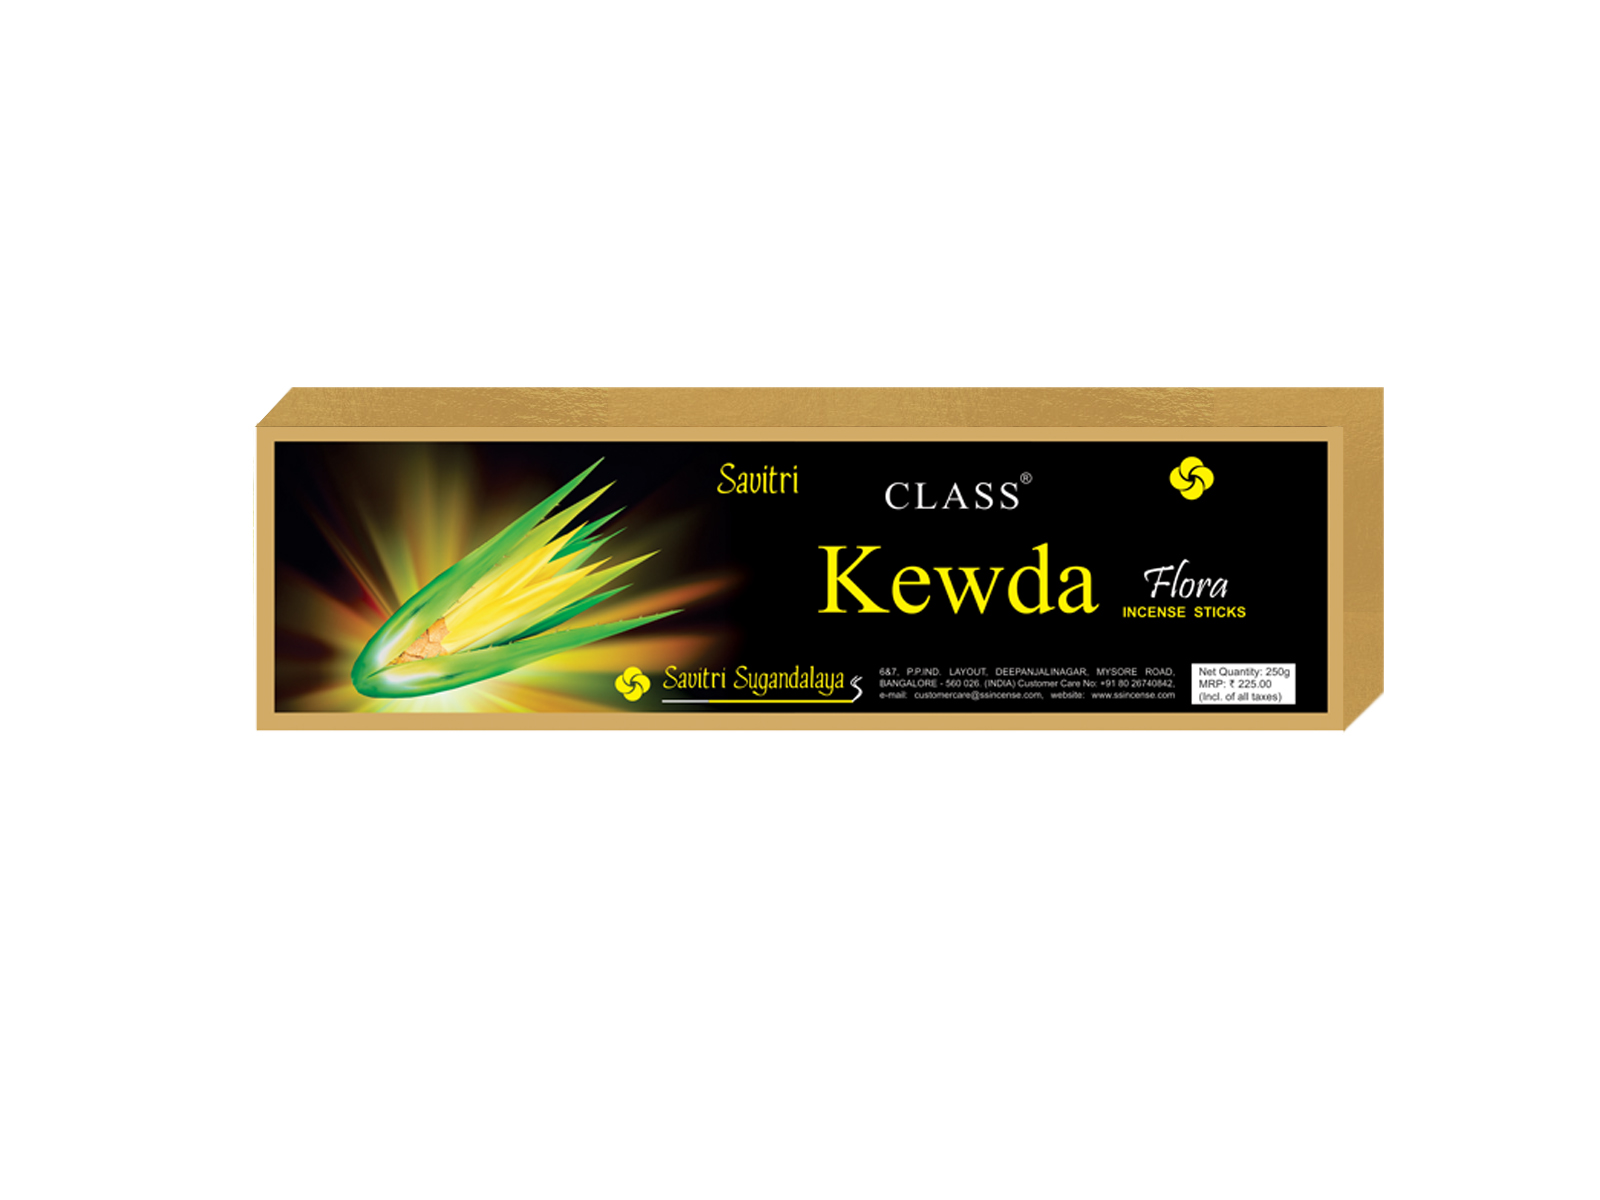 Kewda_gold Box